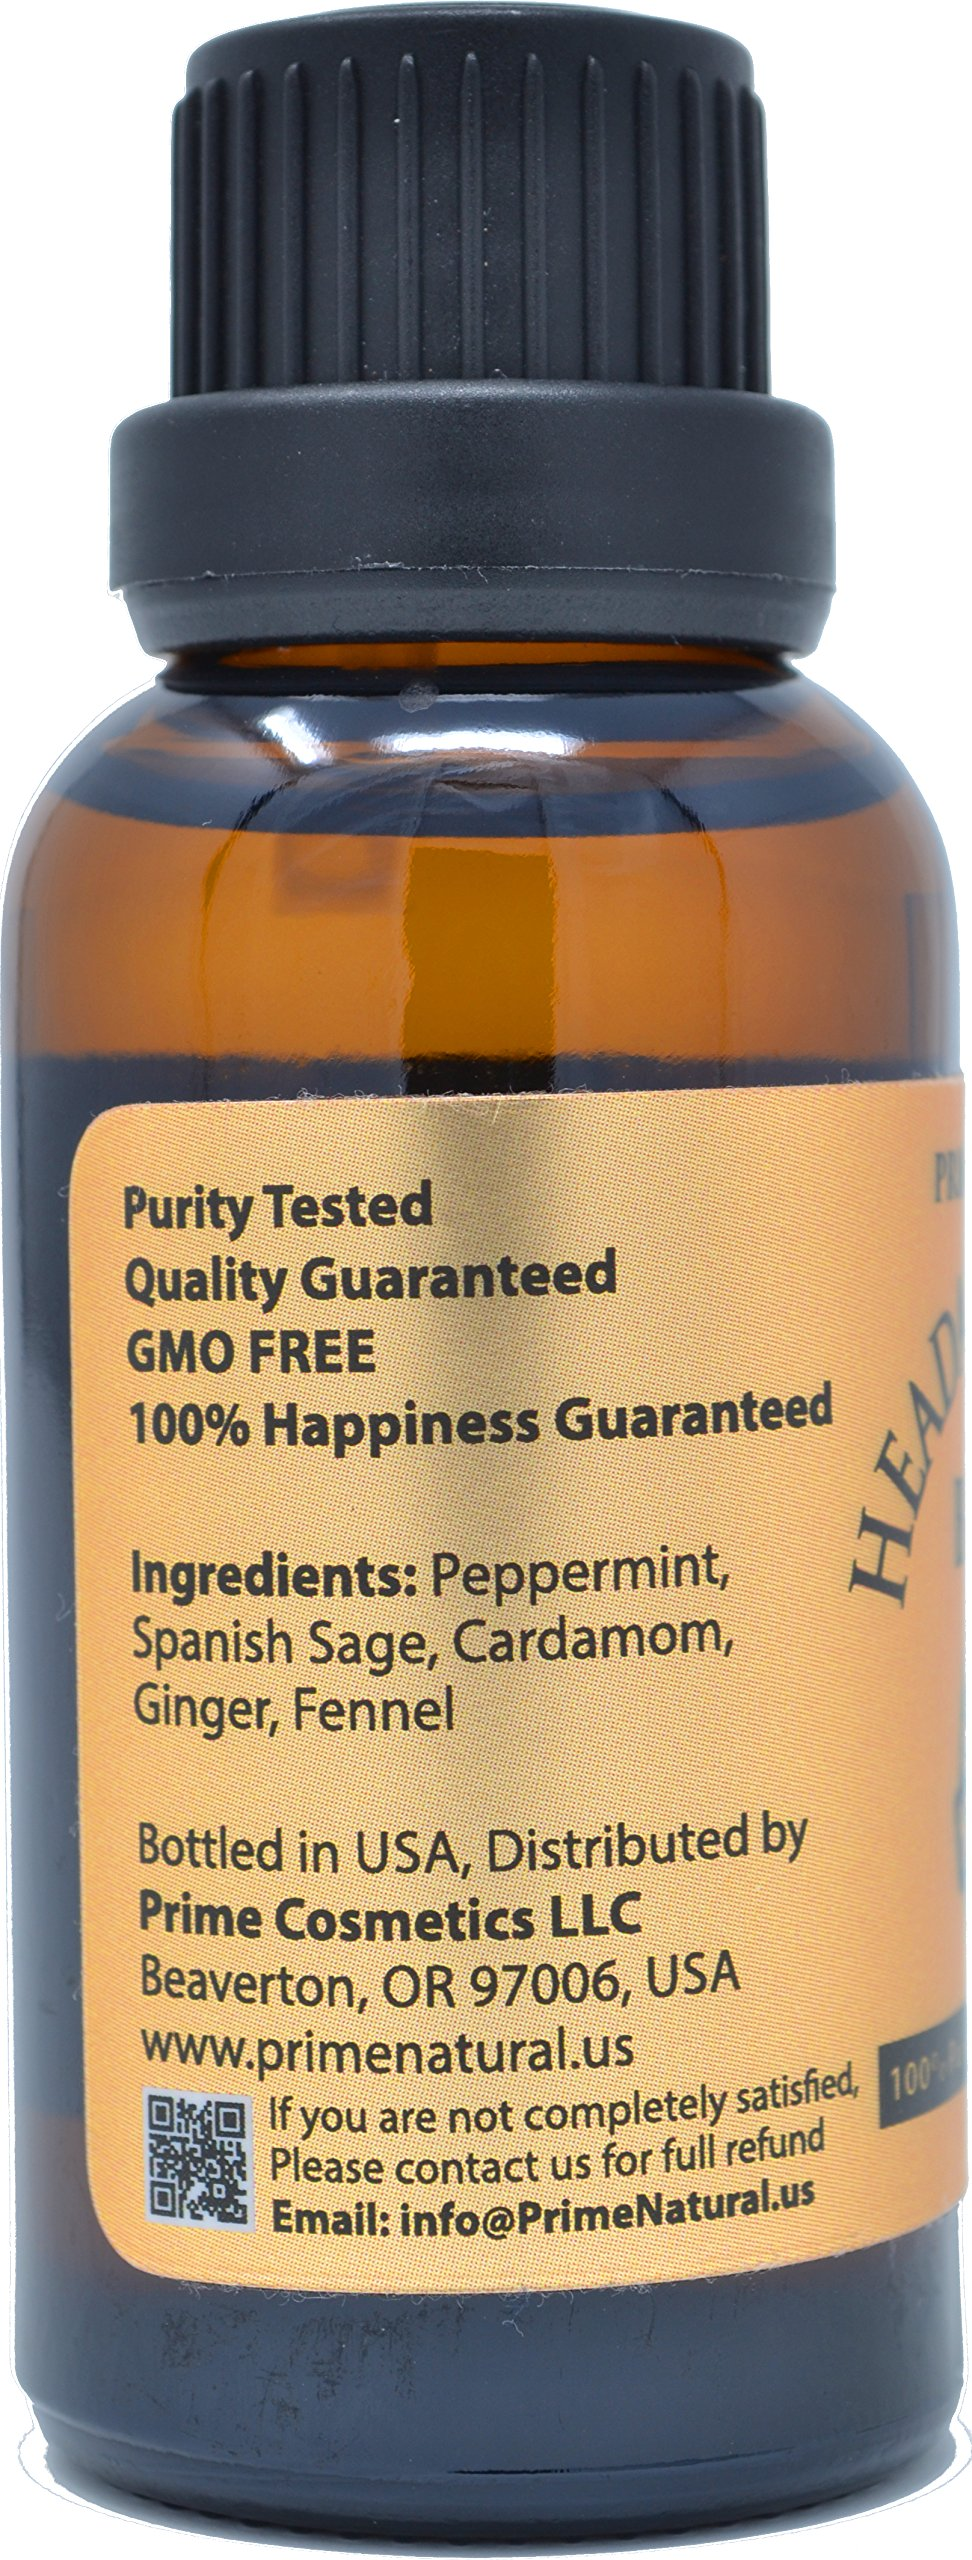 Headache Relief Essential Oil Blend 30ml/1oz - 100% Natural Pure Undiluted Therapeutic Grade for Aromatherapy, Scents & Diffuser - Migraine, Tension, Relaxation, Stress Relief, Calming by Prime Natural (Image #2)